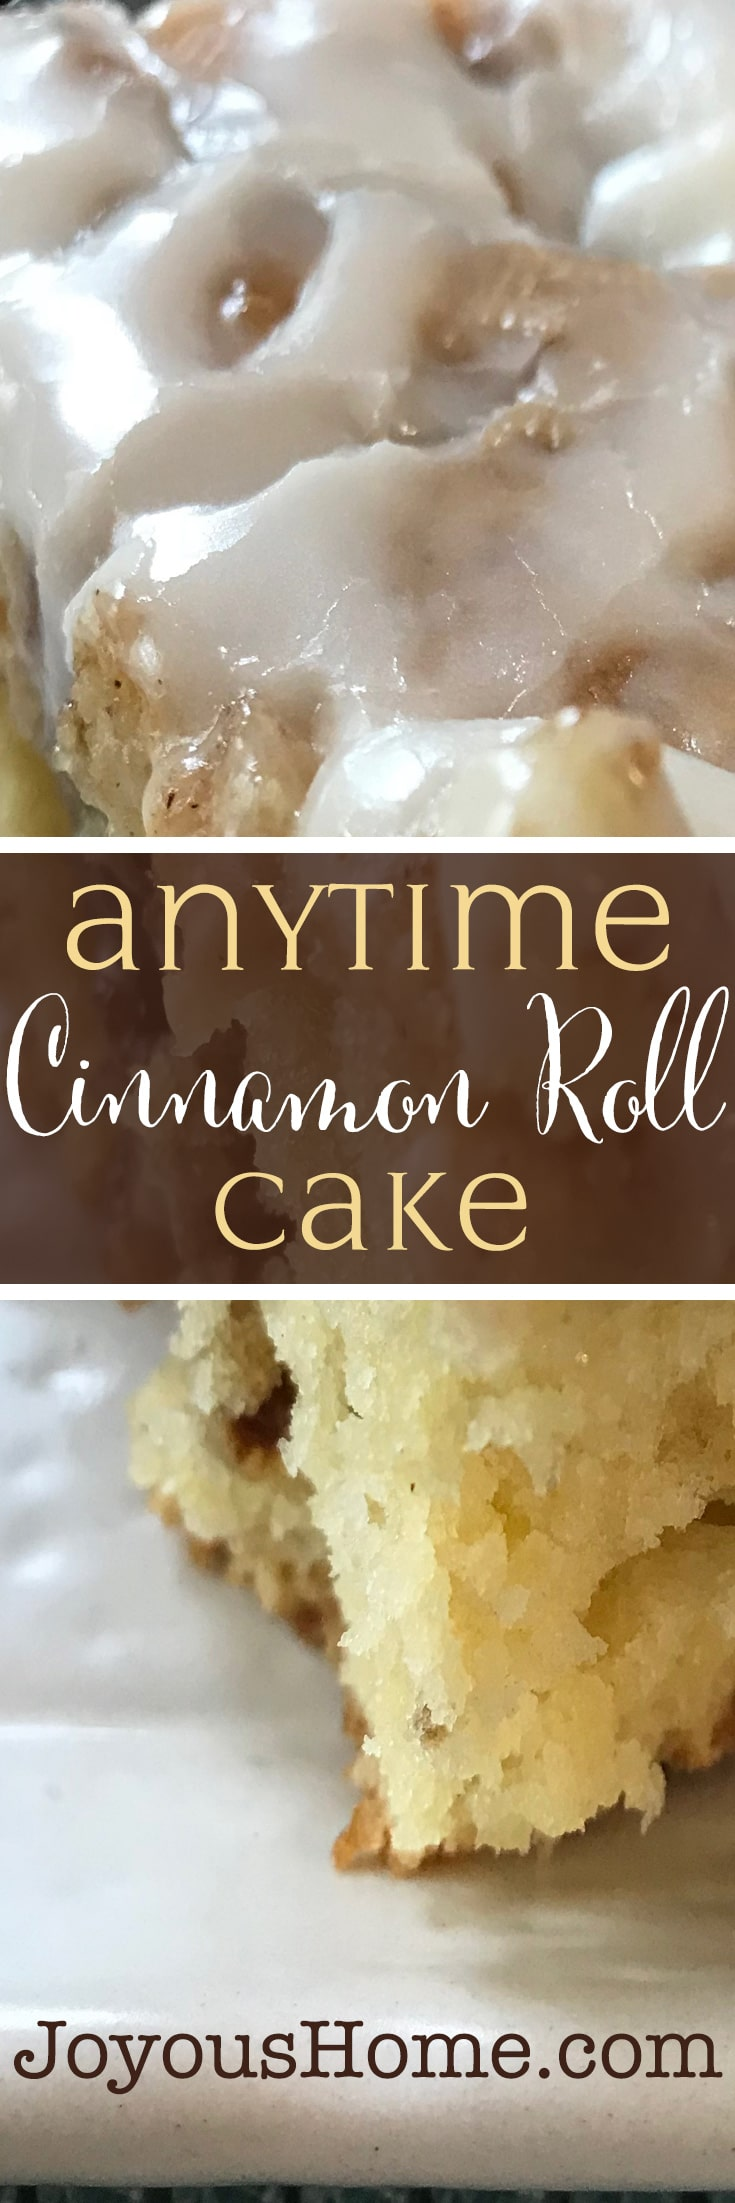 Anytime Cinnamon Roll Cake